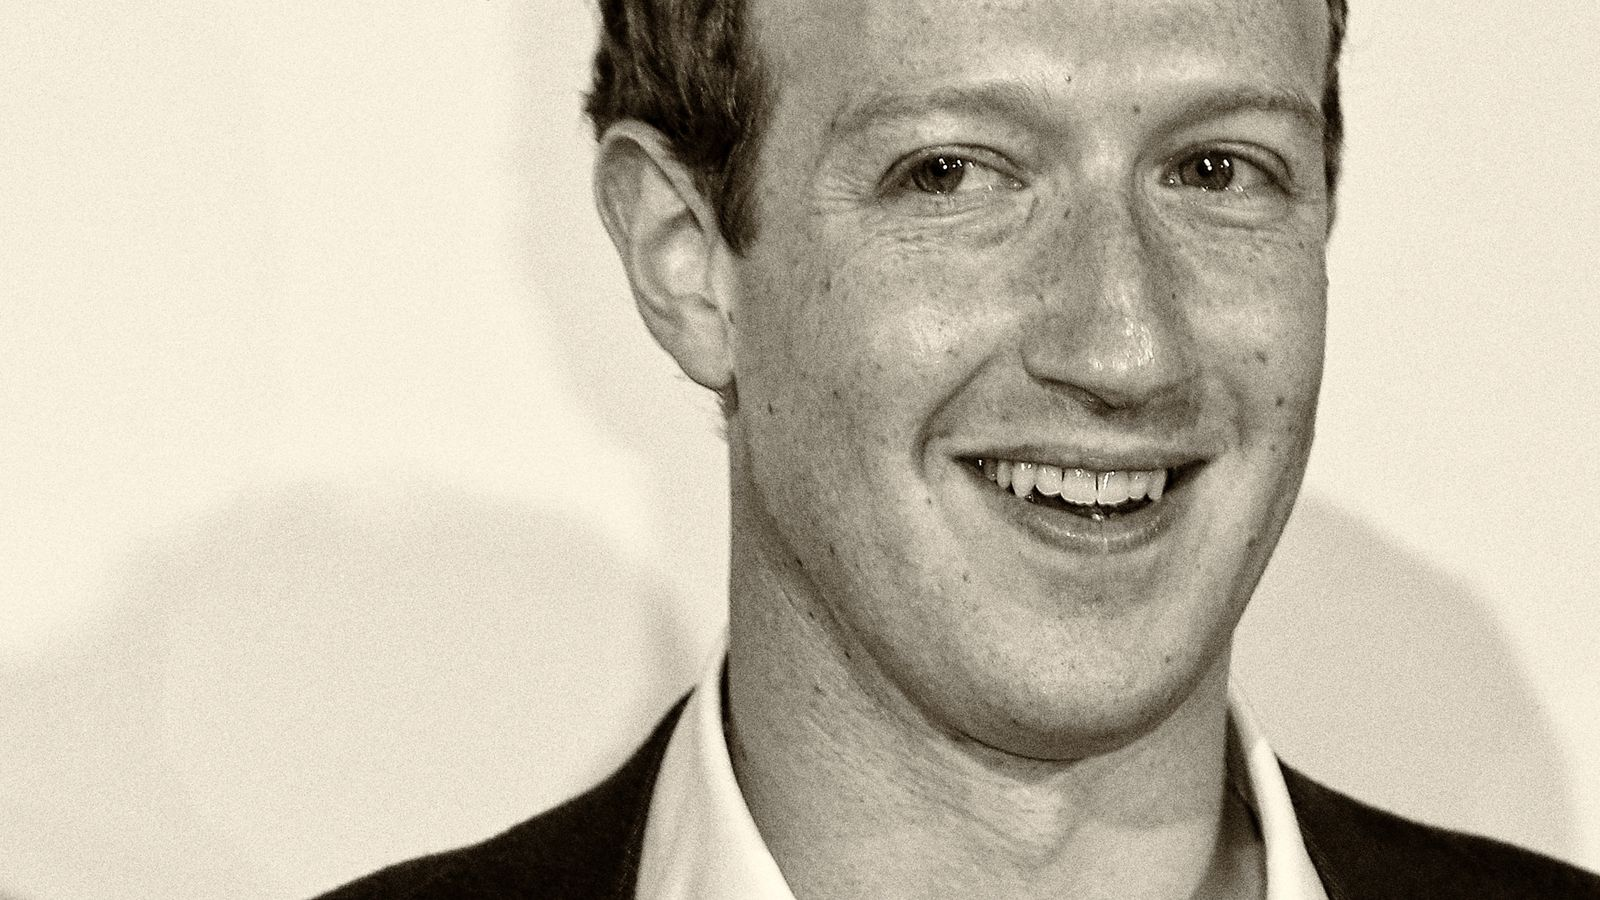 Mark Zuckerberg Wants Facebook to Have More Power in Our Lives, and We Should Resist